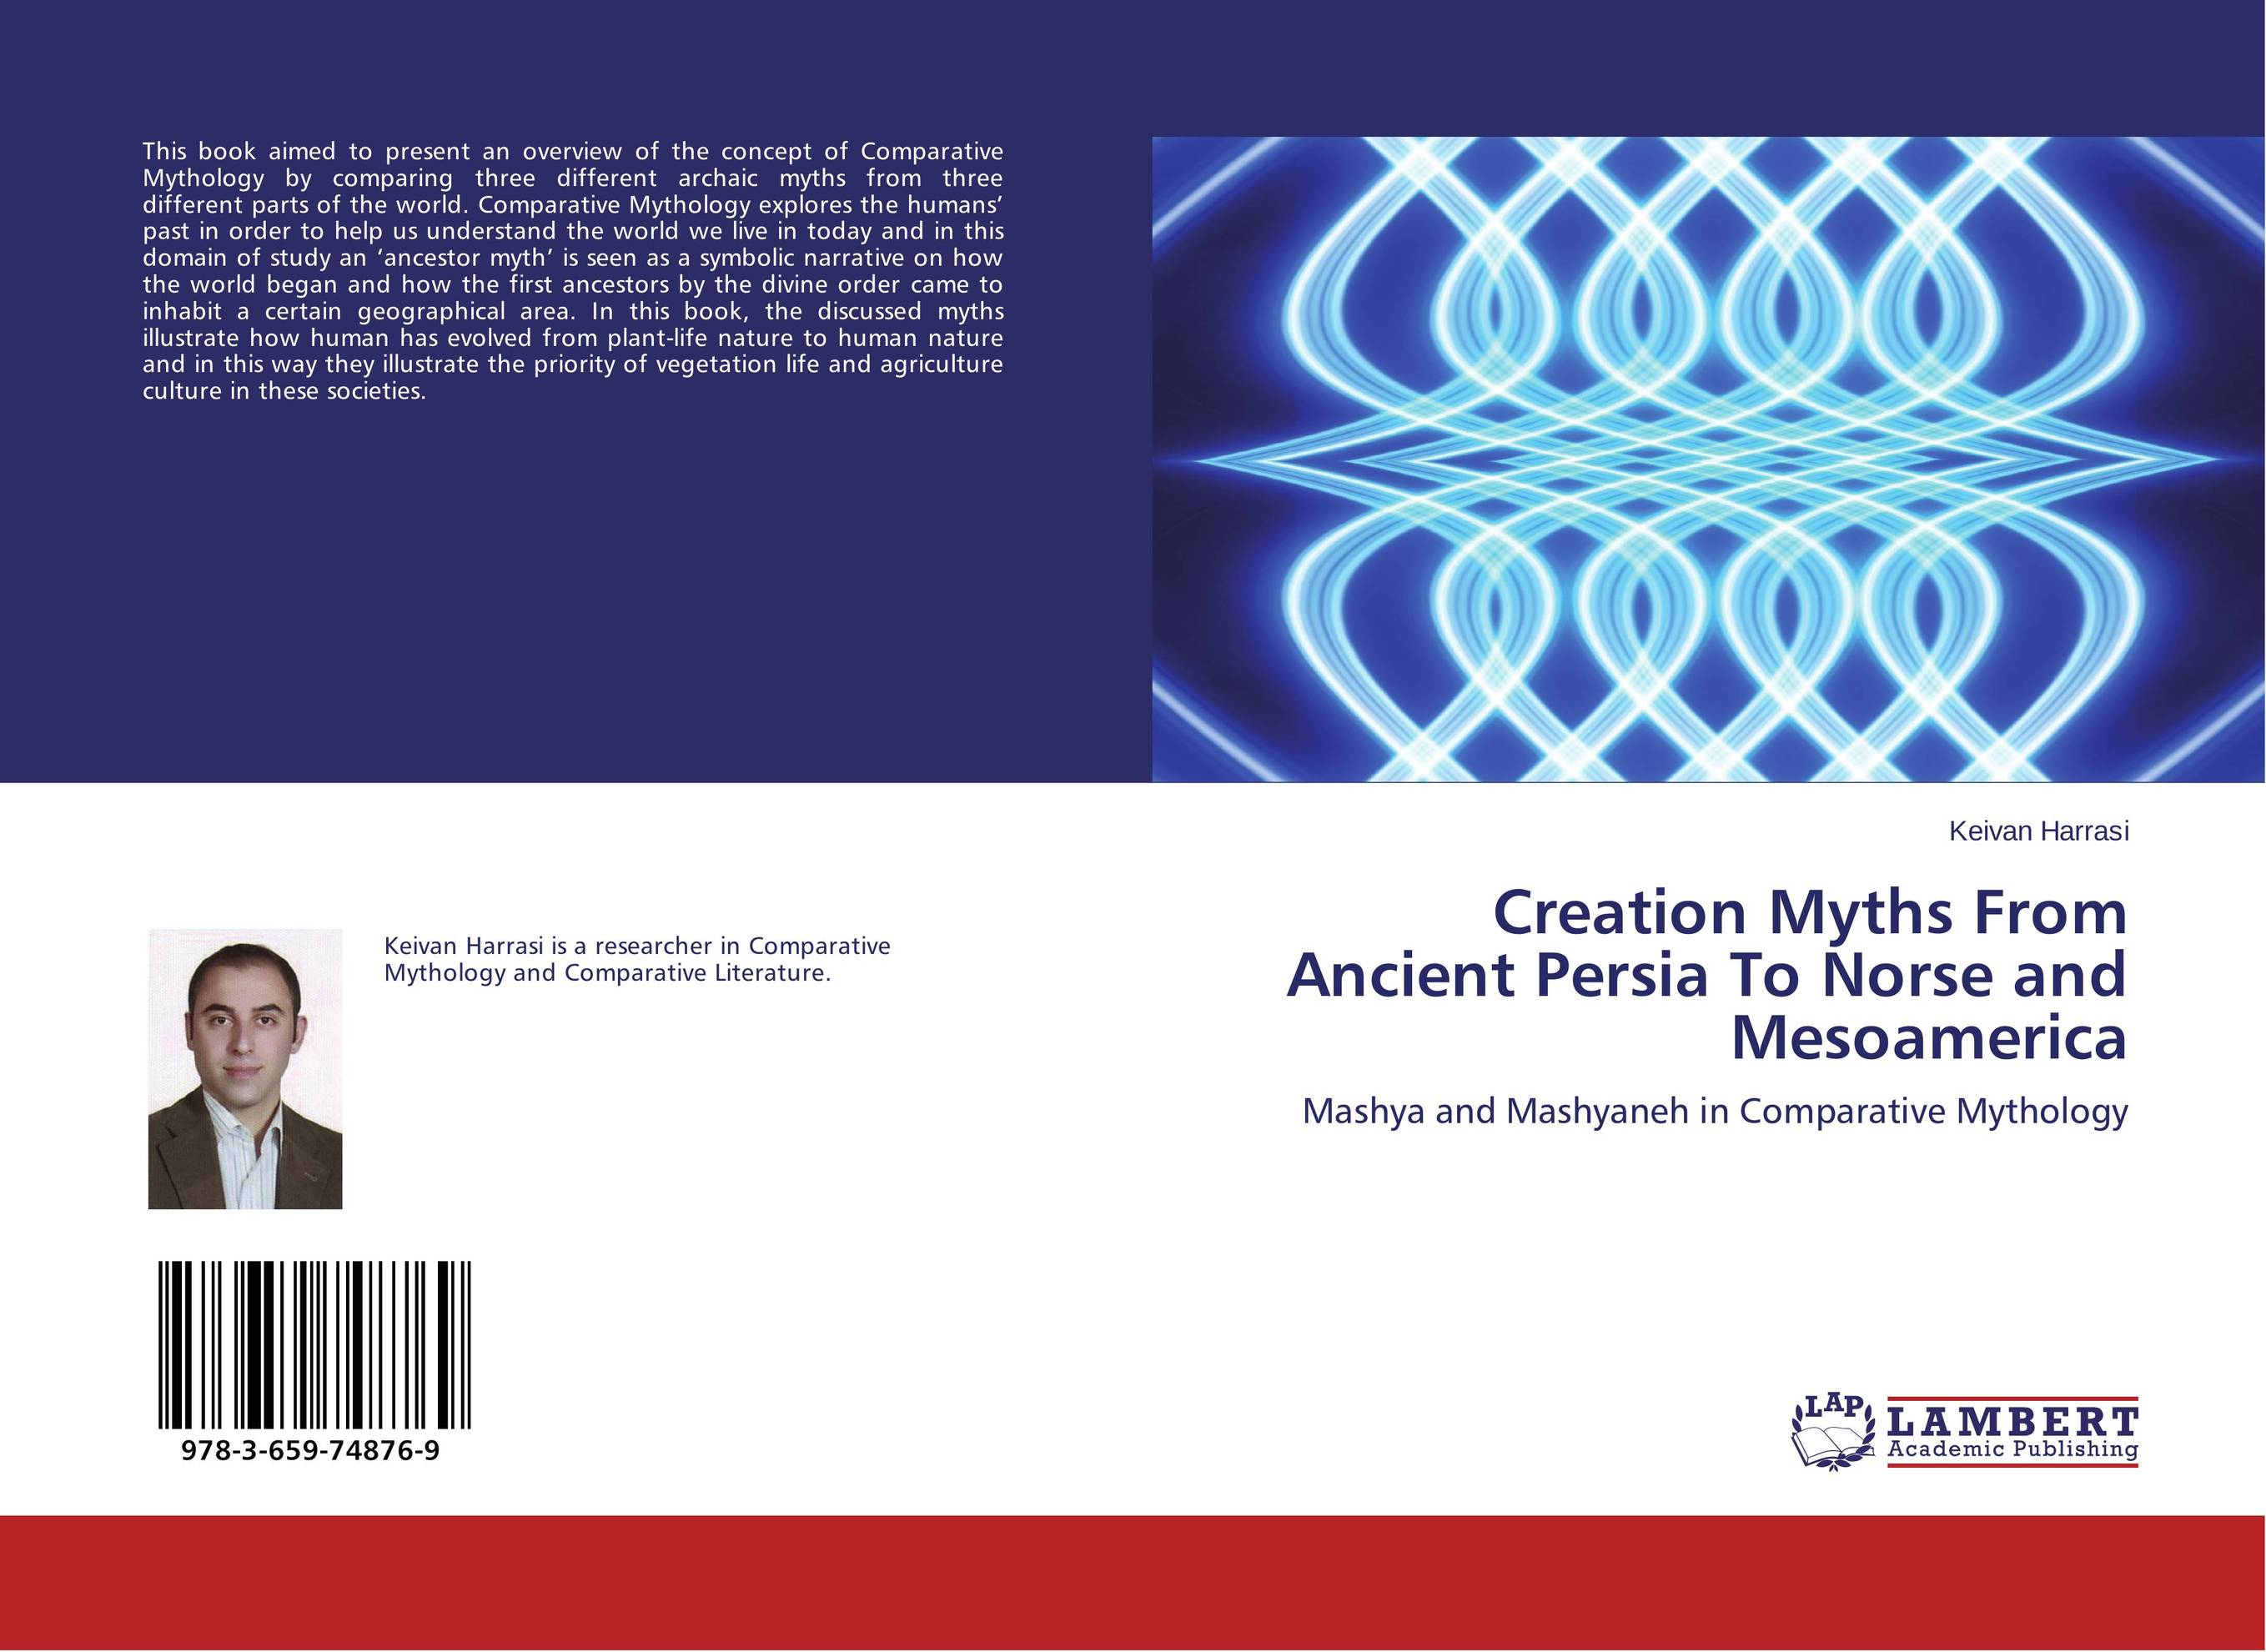 Creation Myths From Ancient Persia To Norse and Mesoamerica illustrated norse myths